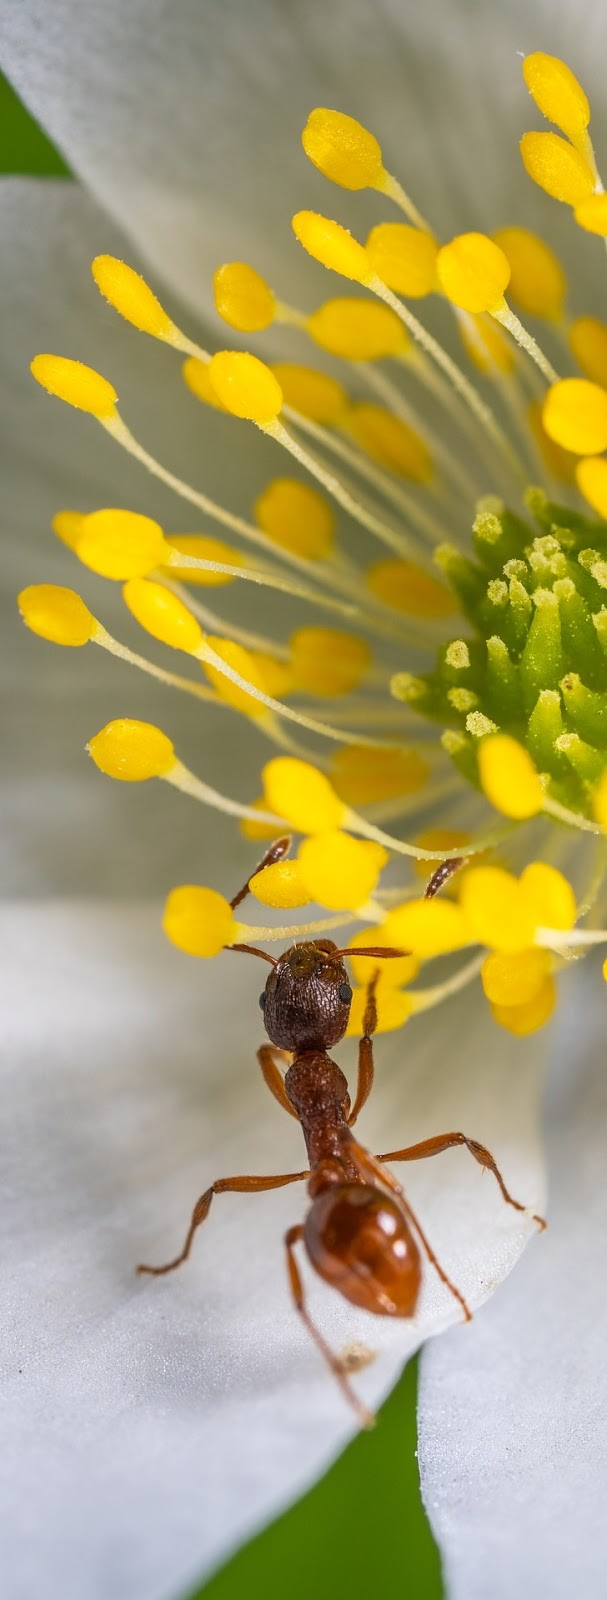 Macro photo an ant on a flower.